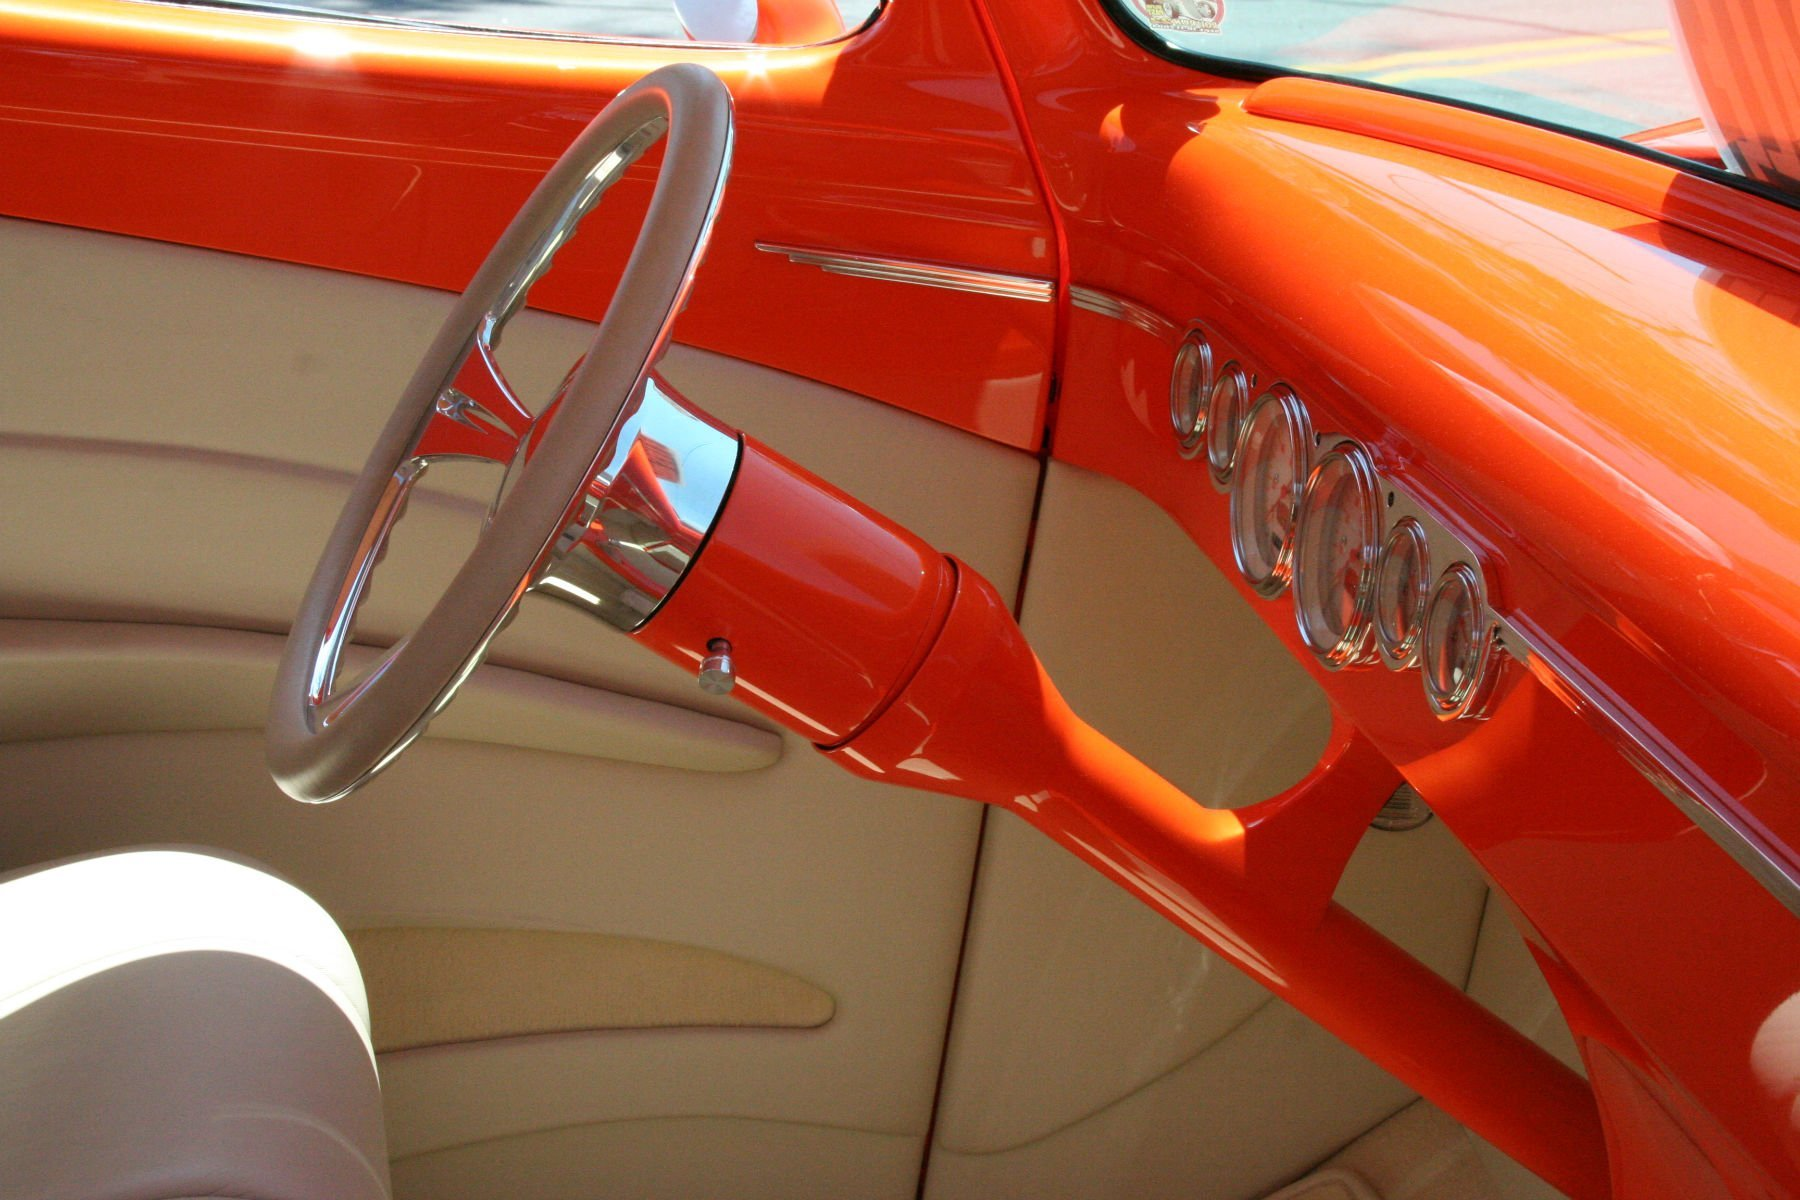 This 8-position multi-angle tilt column allows the steering wheel to arch through 35 degrees—fifteen degrees of movement above center and 20 degrees below.